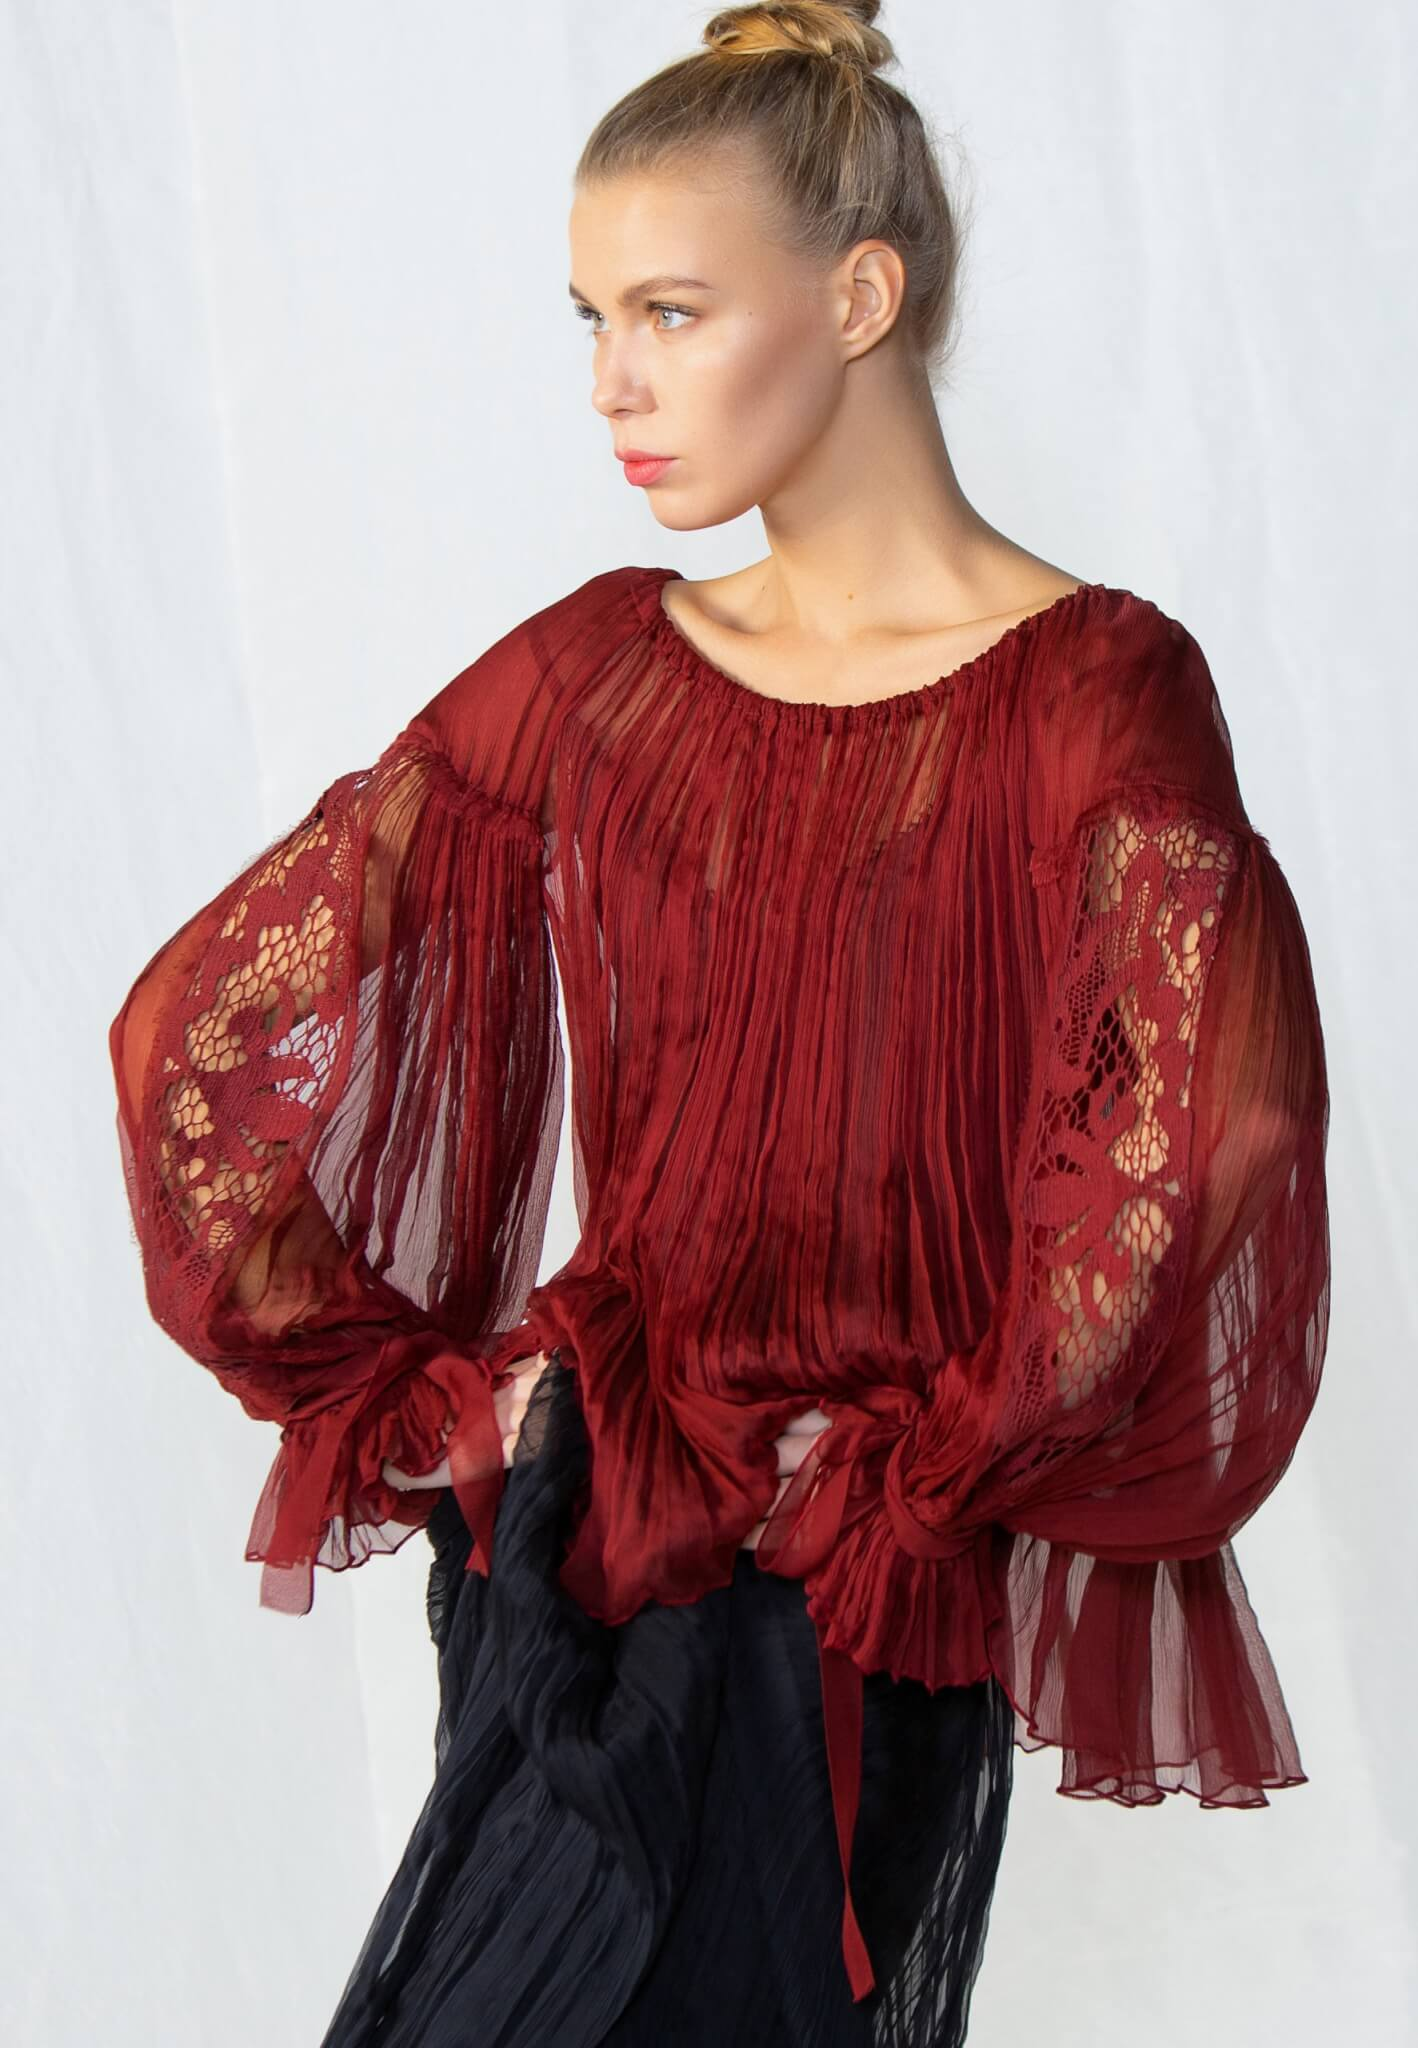 Red silk blouse with lace